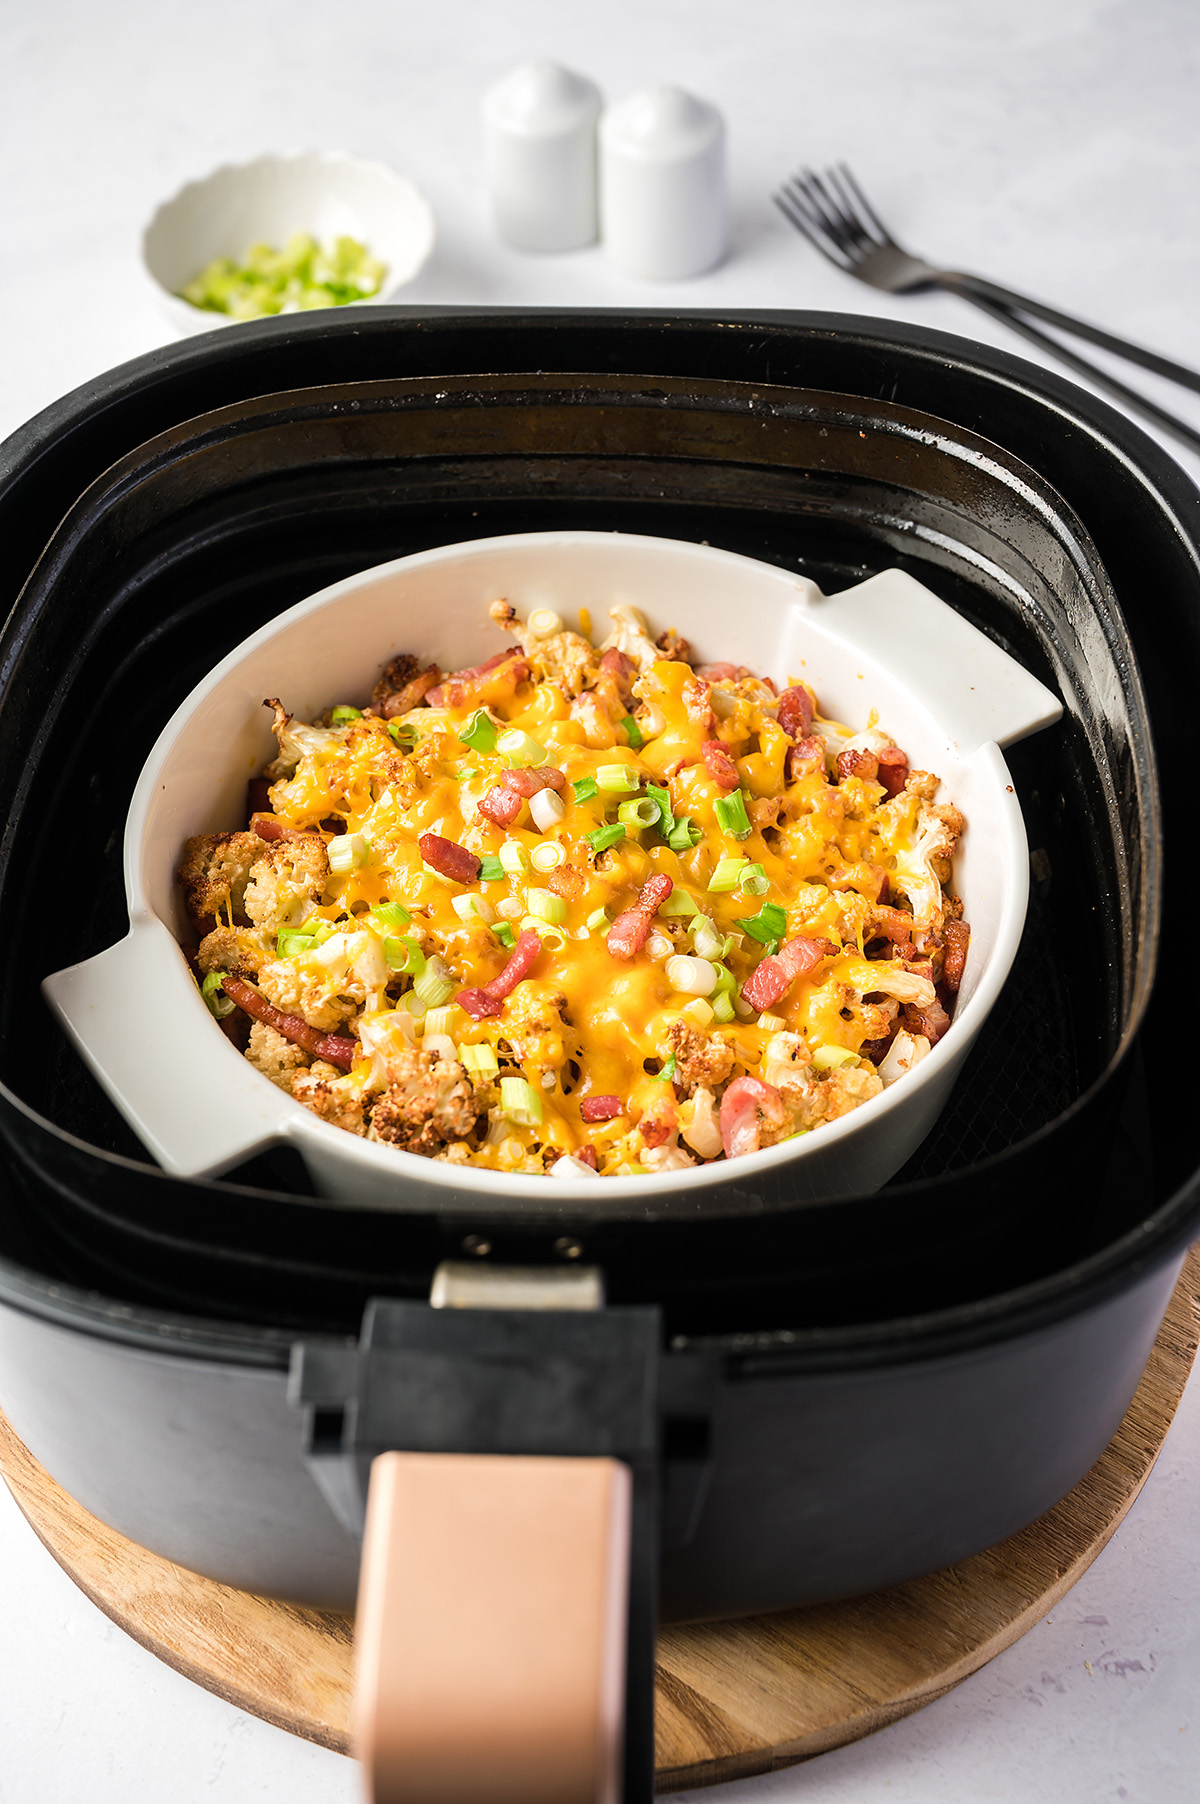 A baking dish of cauliflower and cheese in an air fryer basket